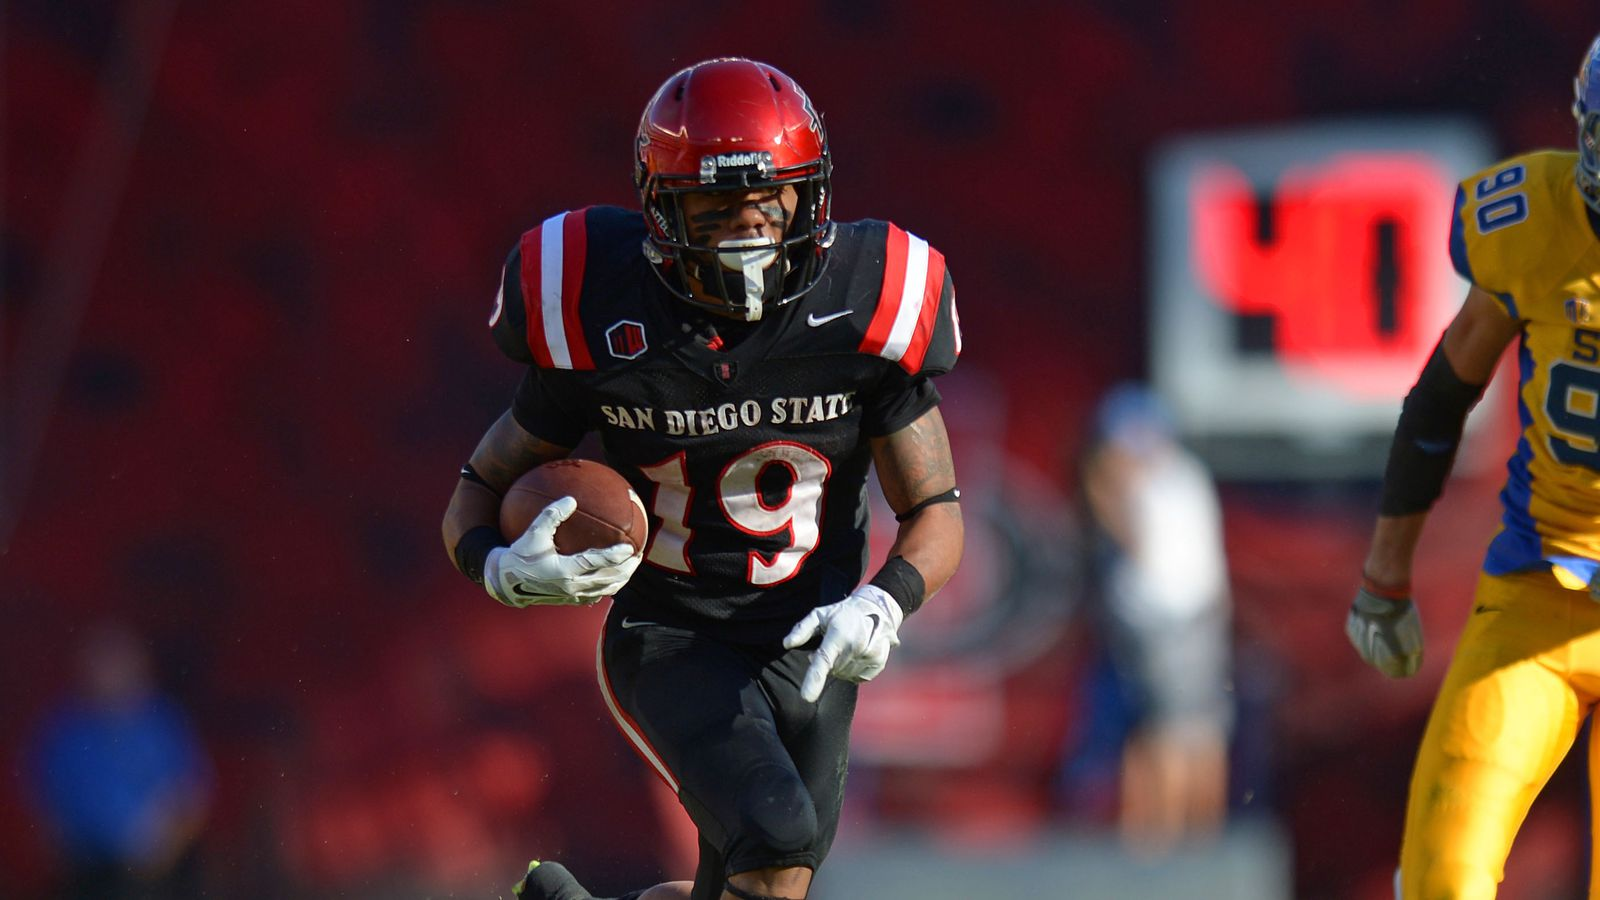 San Diego State Aztecs football